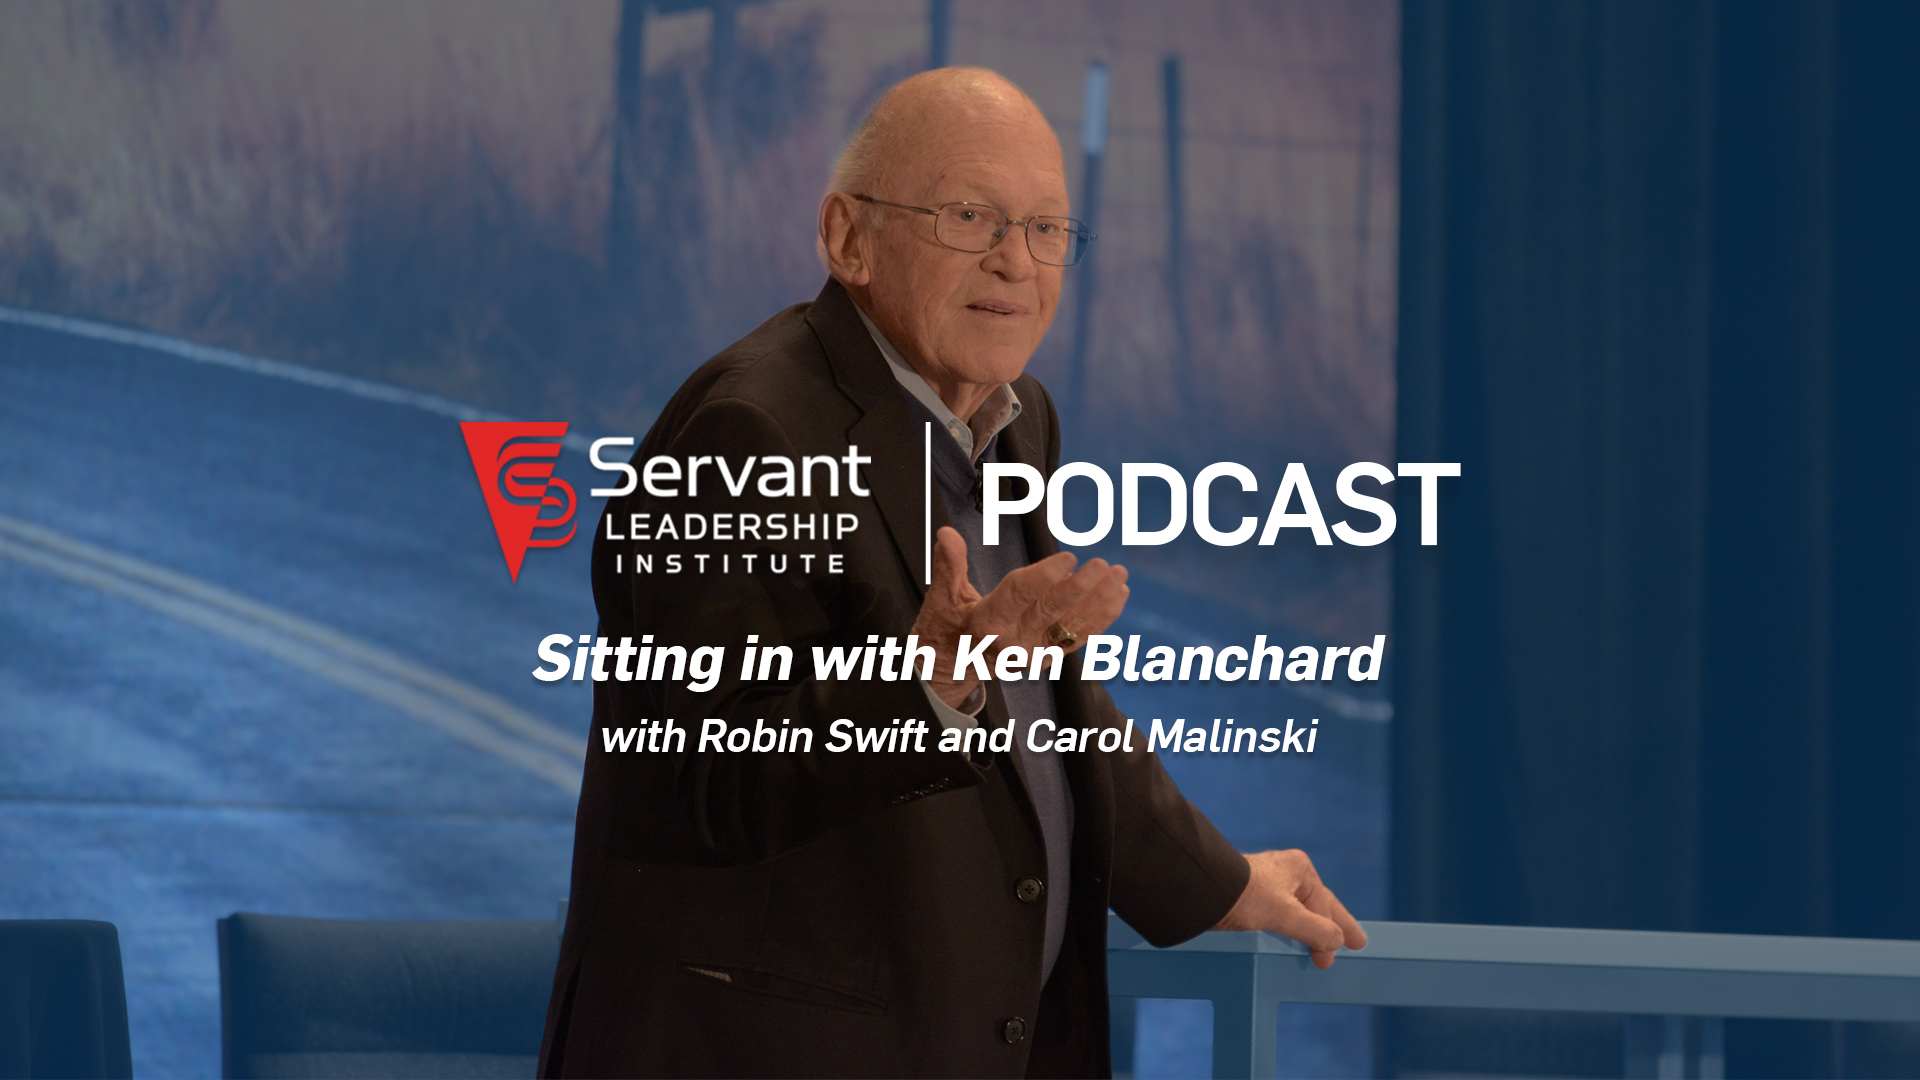 sitting with KenBlanchard 1920x1080.jpg